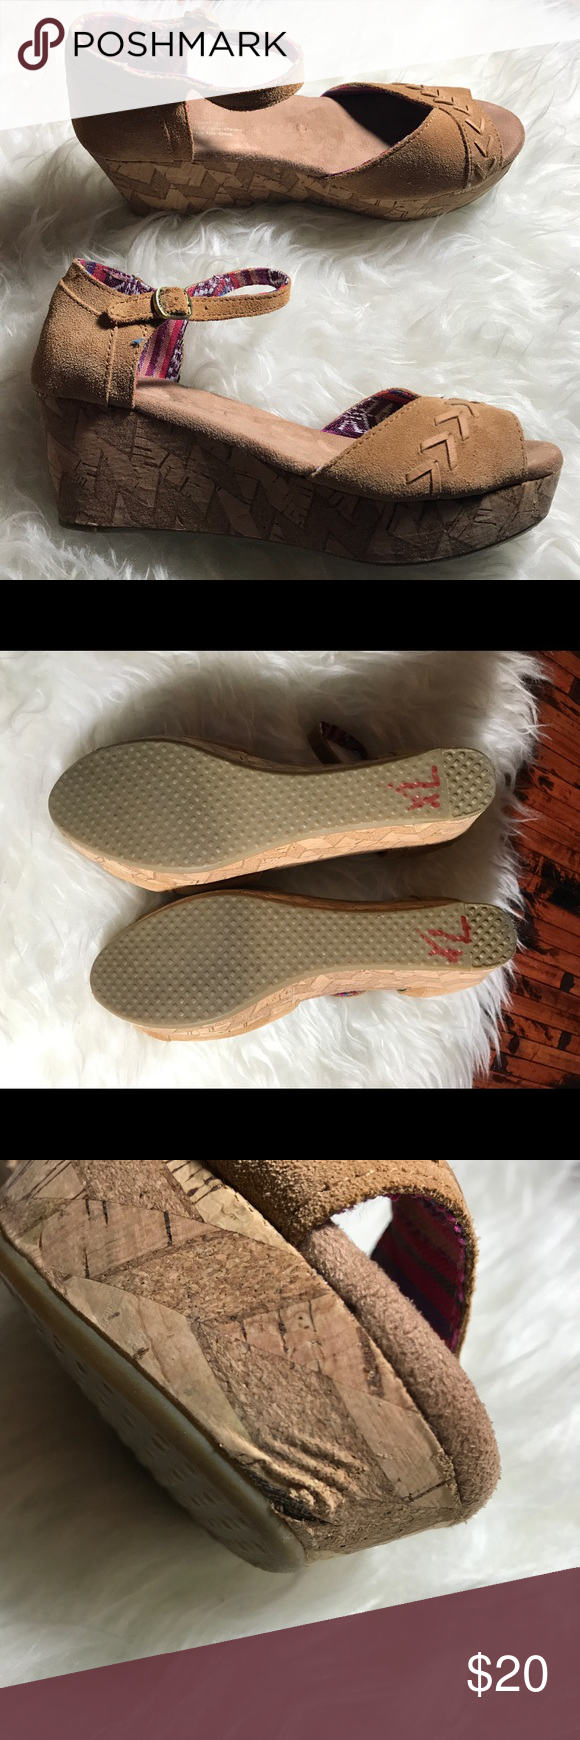 Toms Suede Wedge sandal size 7 Beige Toms Suede Wedge 2.4 Inch heel. Size 7 . Beige with aztec print inside. Ankle buckle. Rubber Sole. Small gashes on the heel as shown in picture . Stain on the back of the right heel as shown in pictures. Still wearable Toms Shoes Wedges